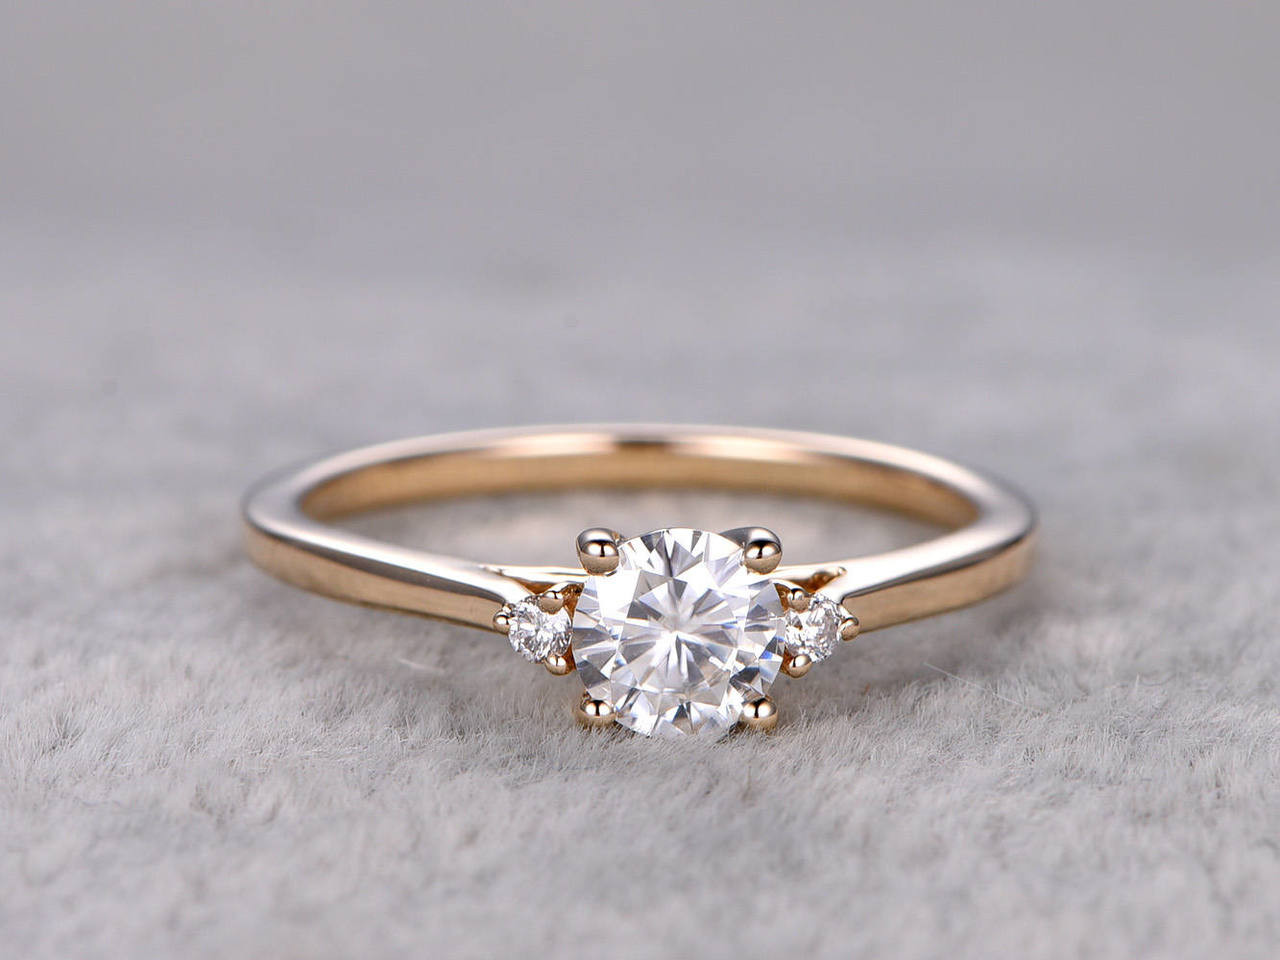 engagement ring com rings and dp set gold white amazon jewellery halo diamond wedding jewelry cushion